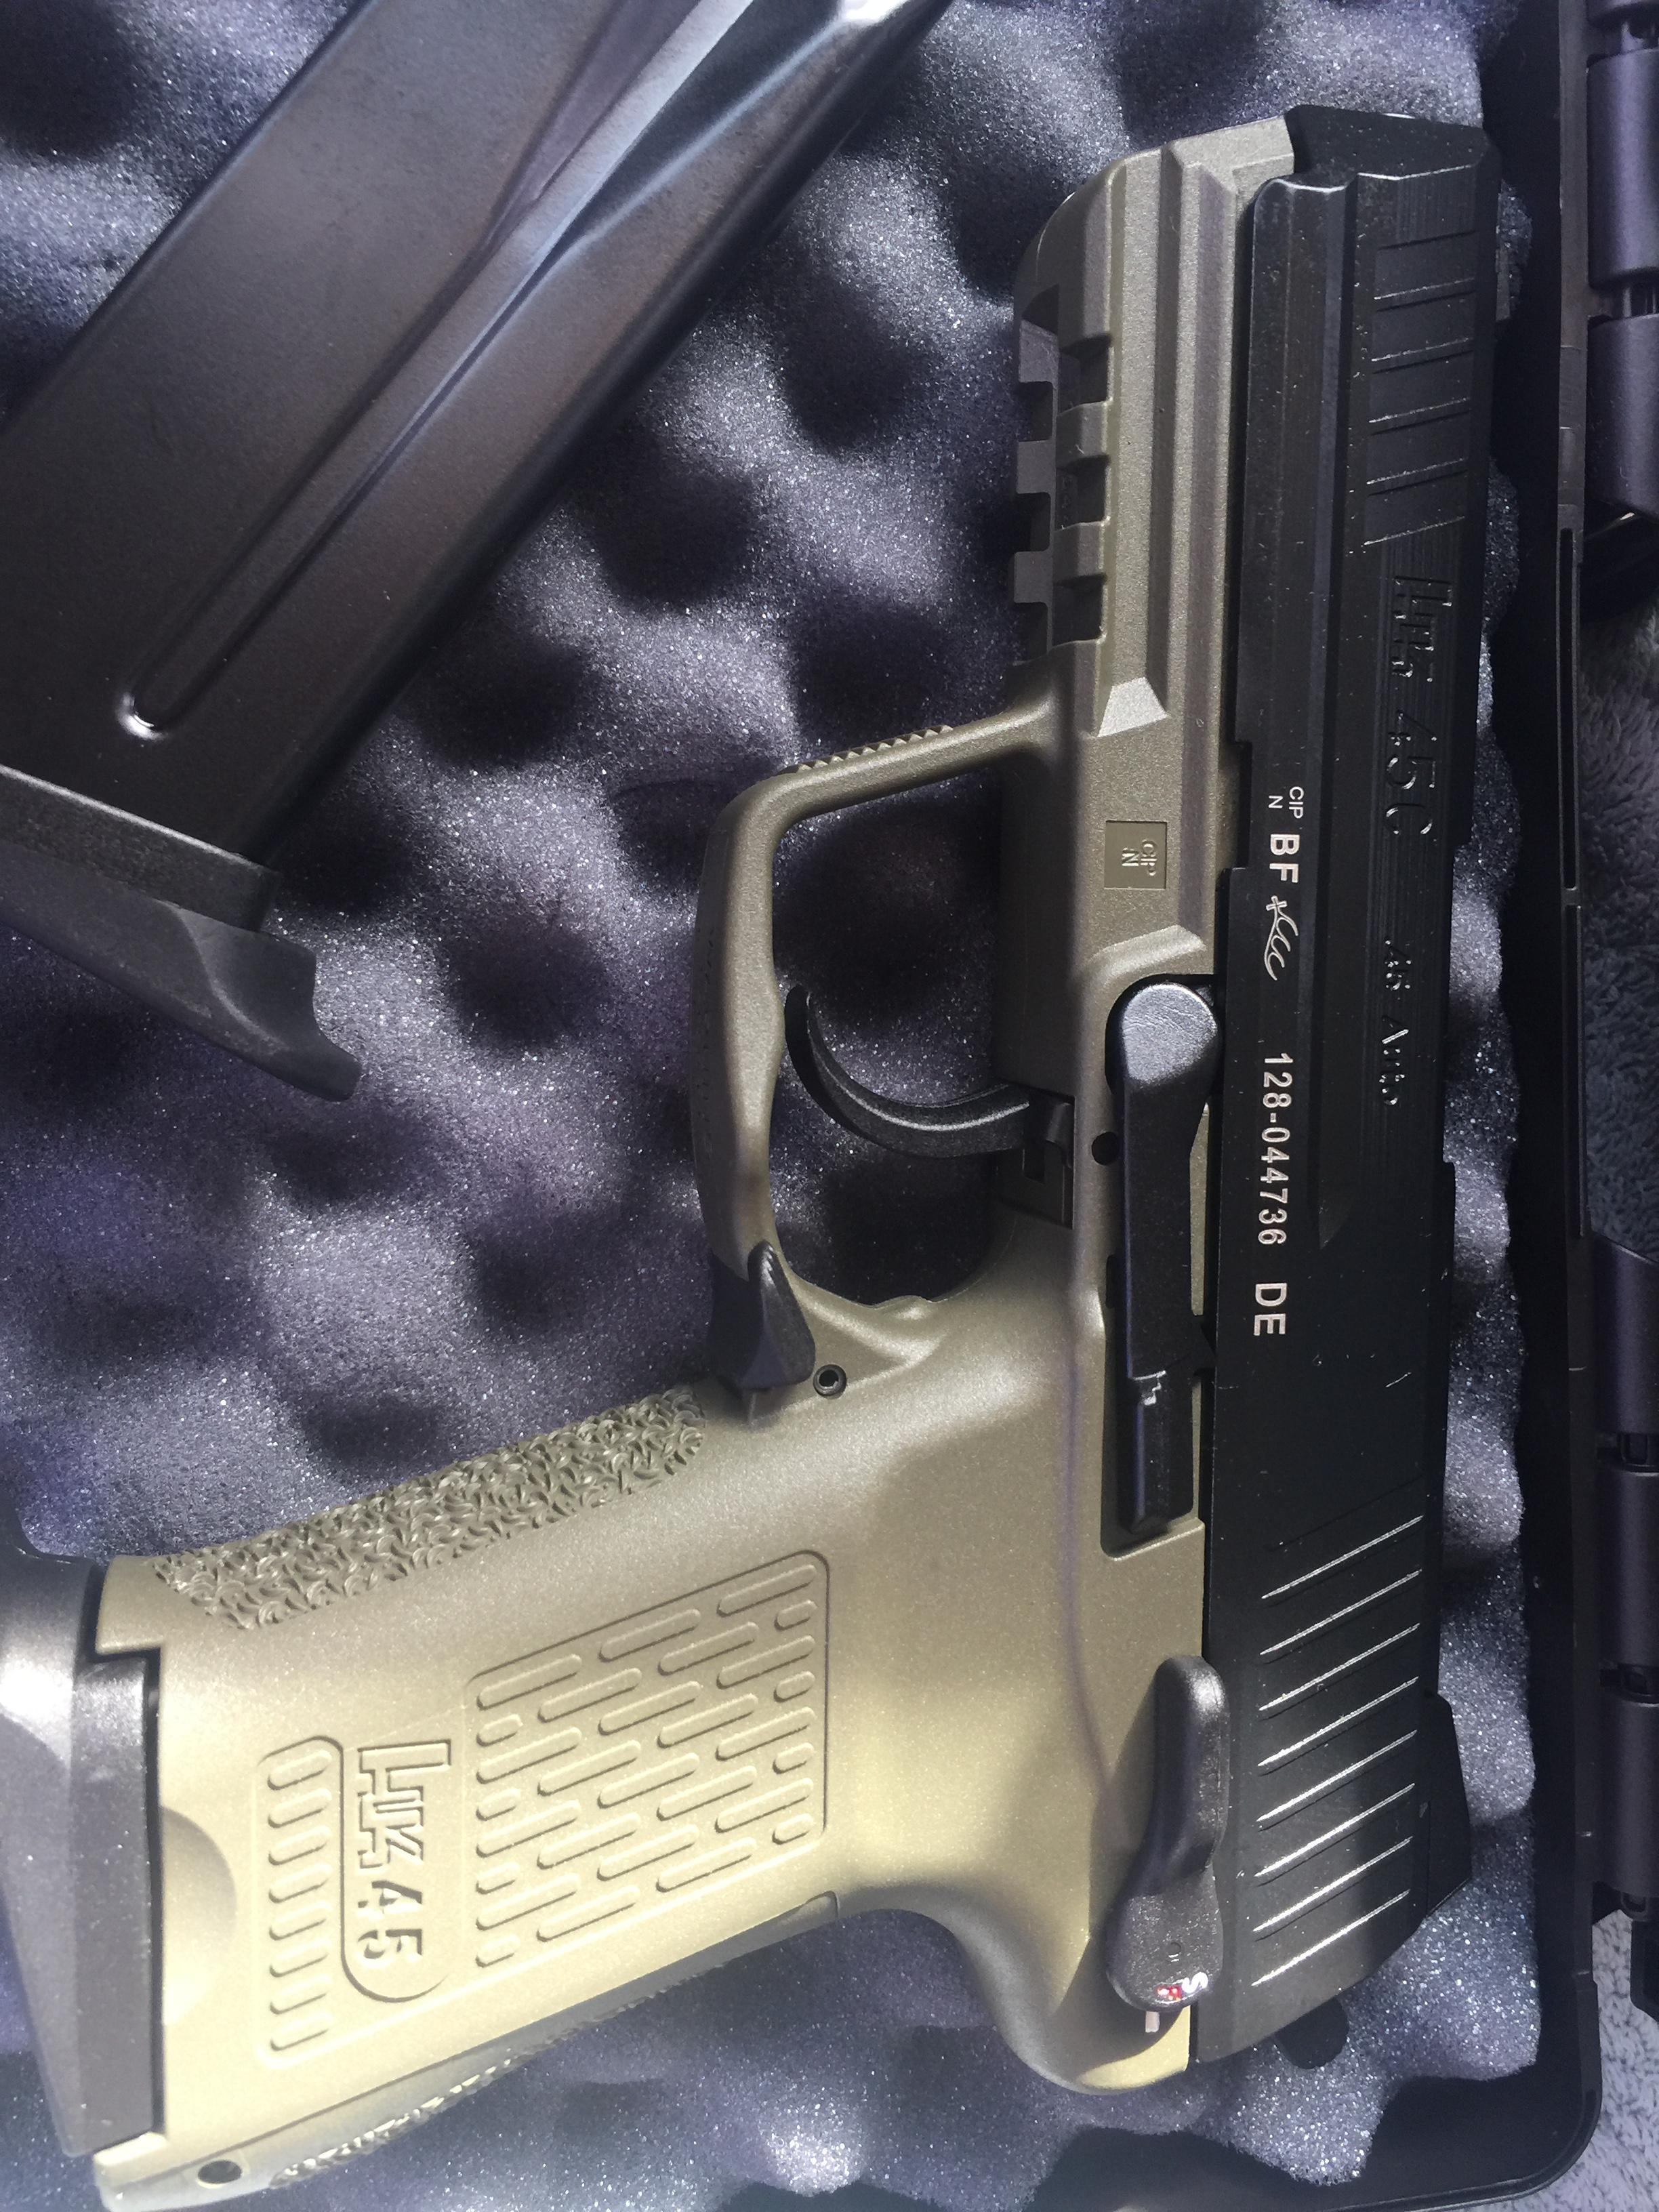 HK45c OD German born....-6a4698a1-e0c3-4e61-a5fb-d83305023660_1583622241890.jpeg